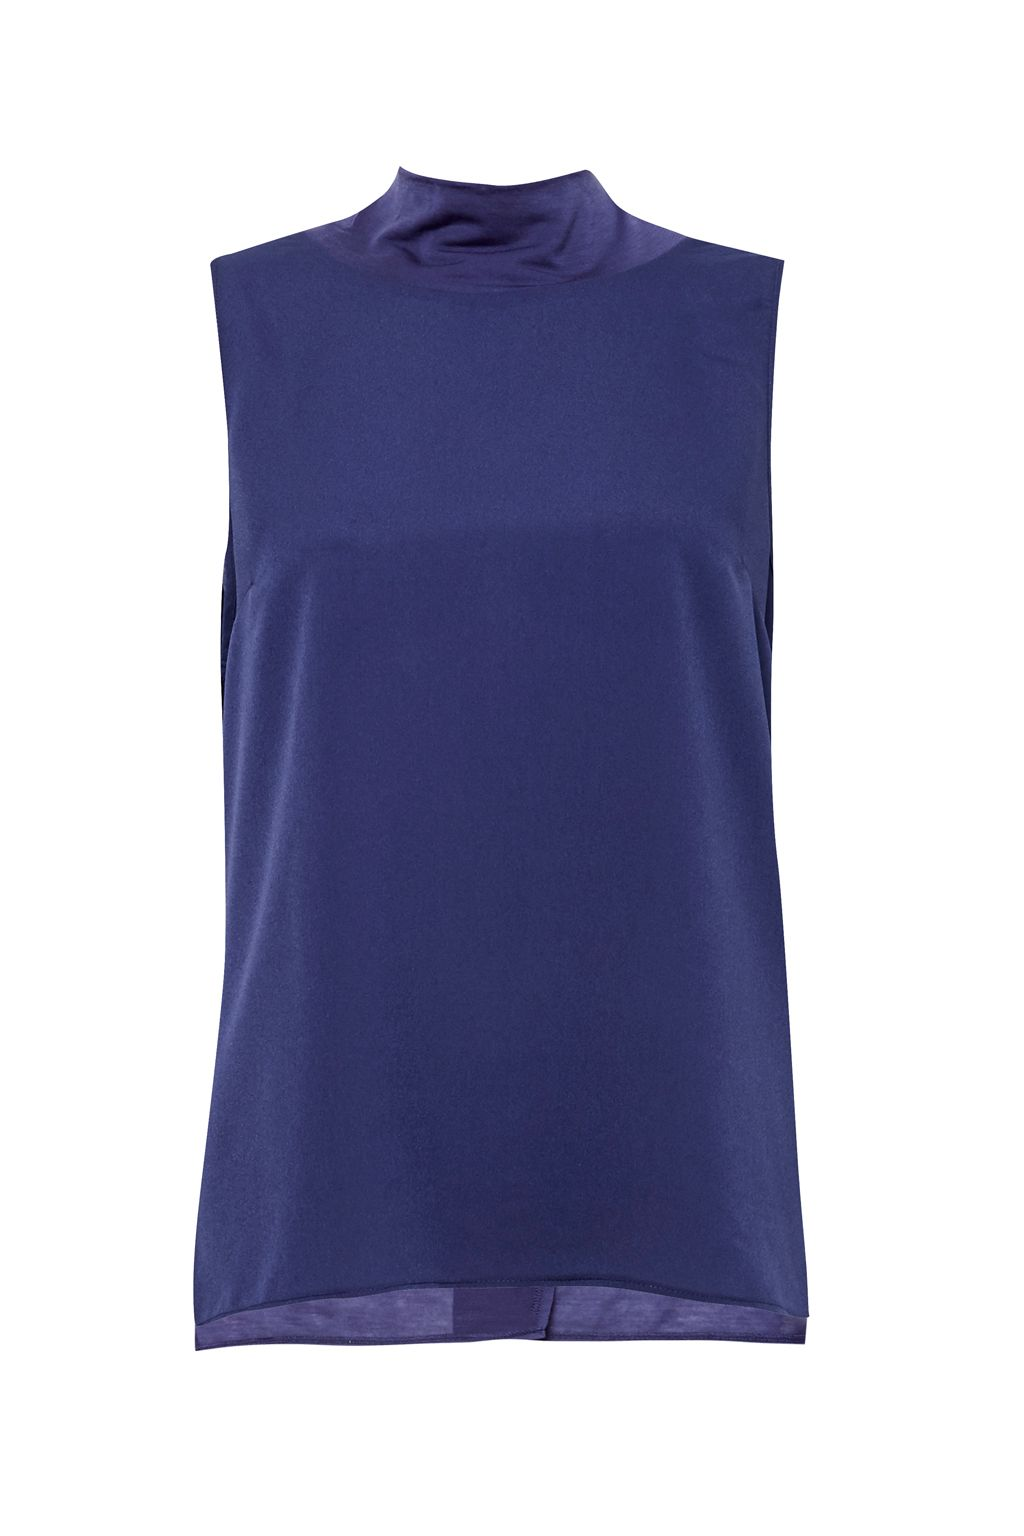 French Connection Crepe Light Mock Neck Top, Blue